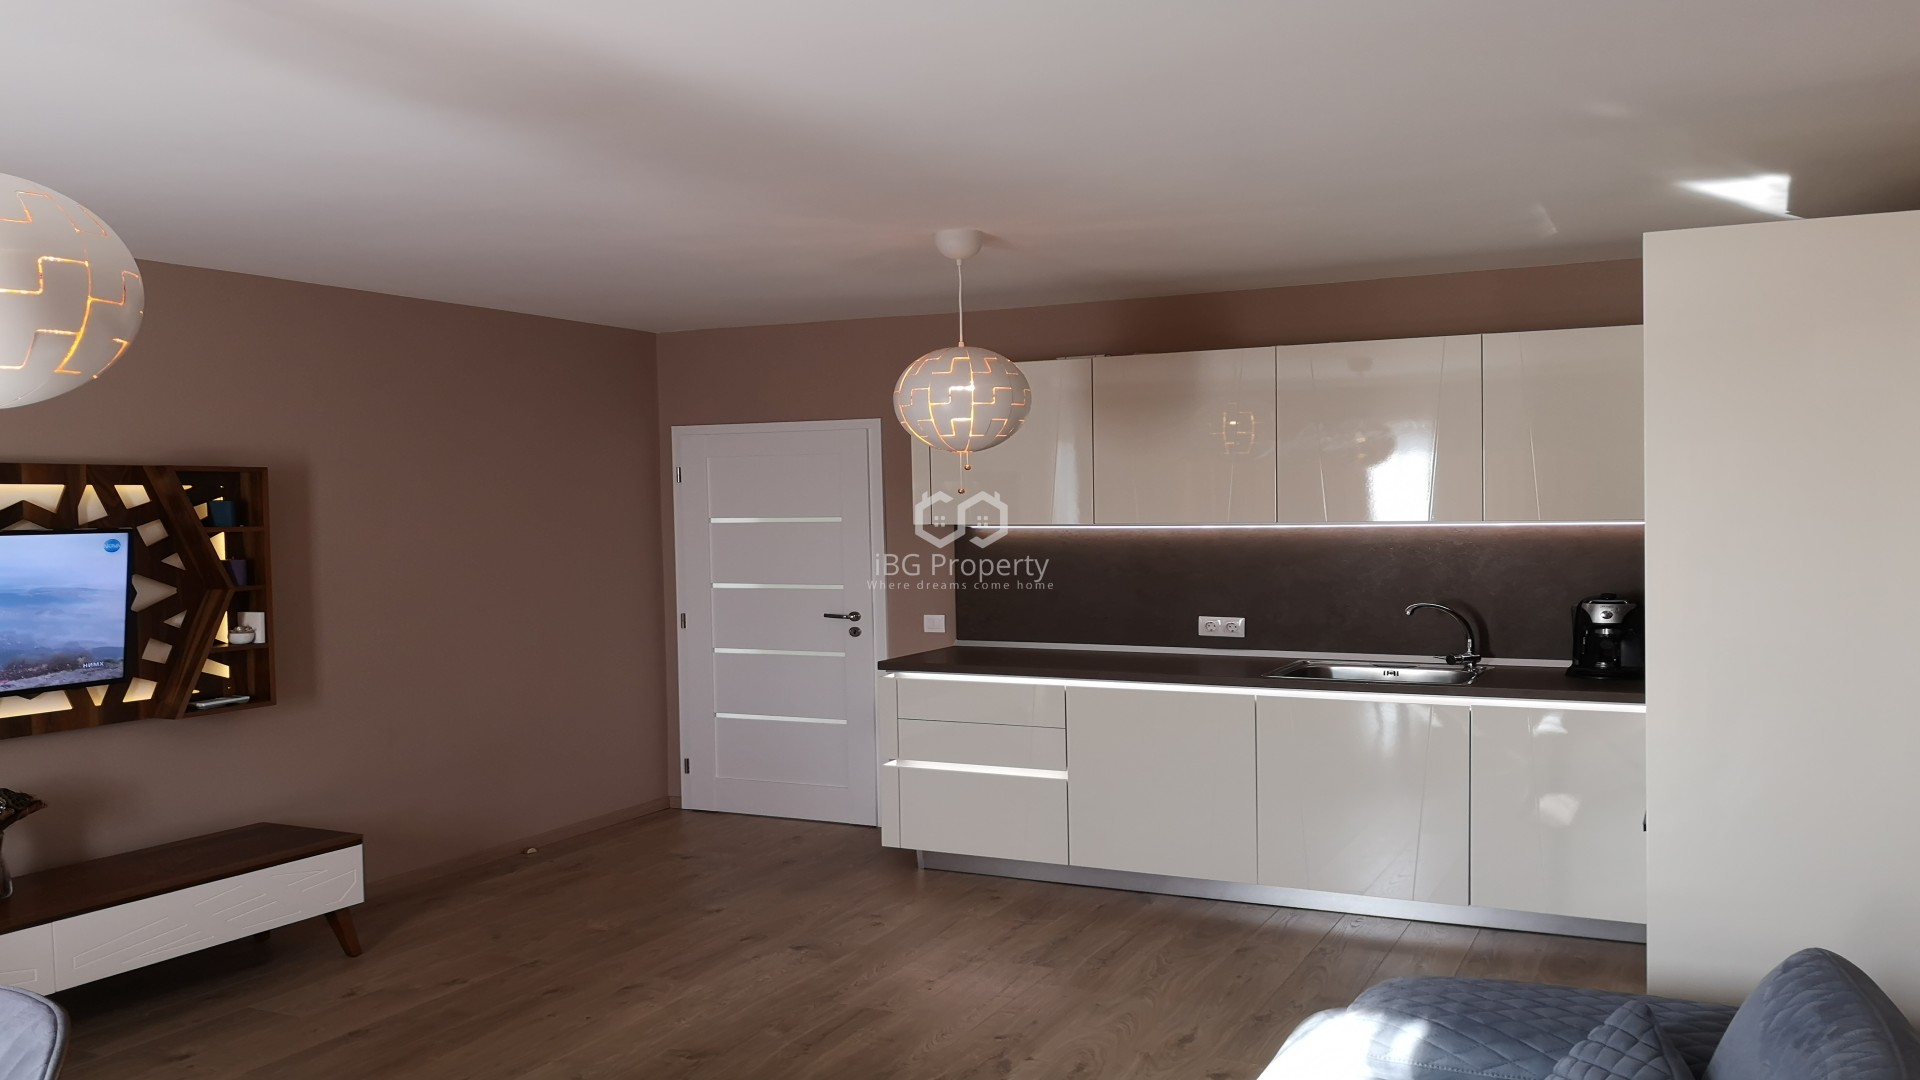 One bedroom apartment Varna 71 m2